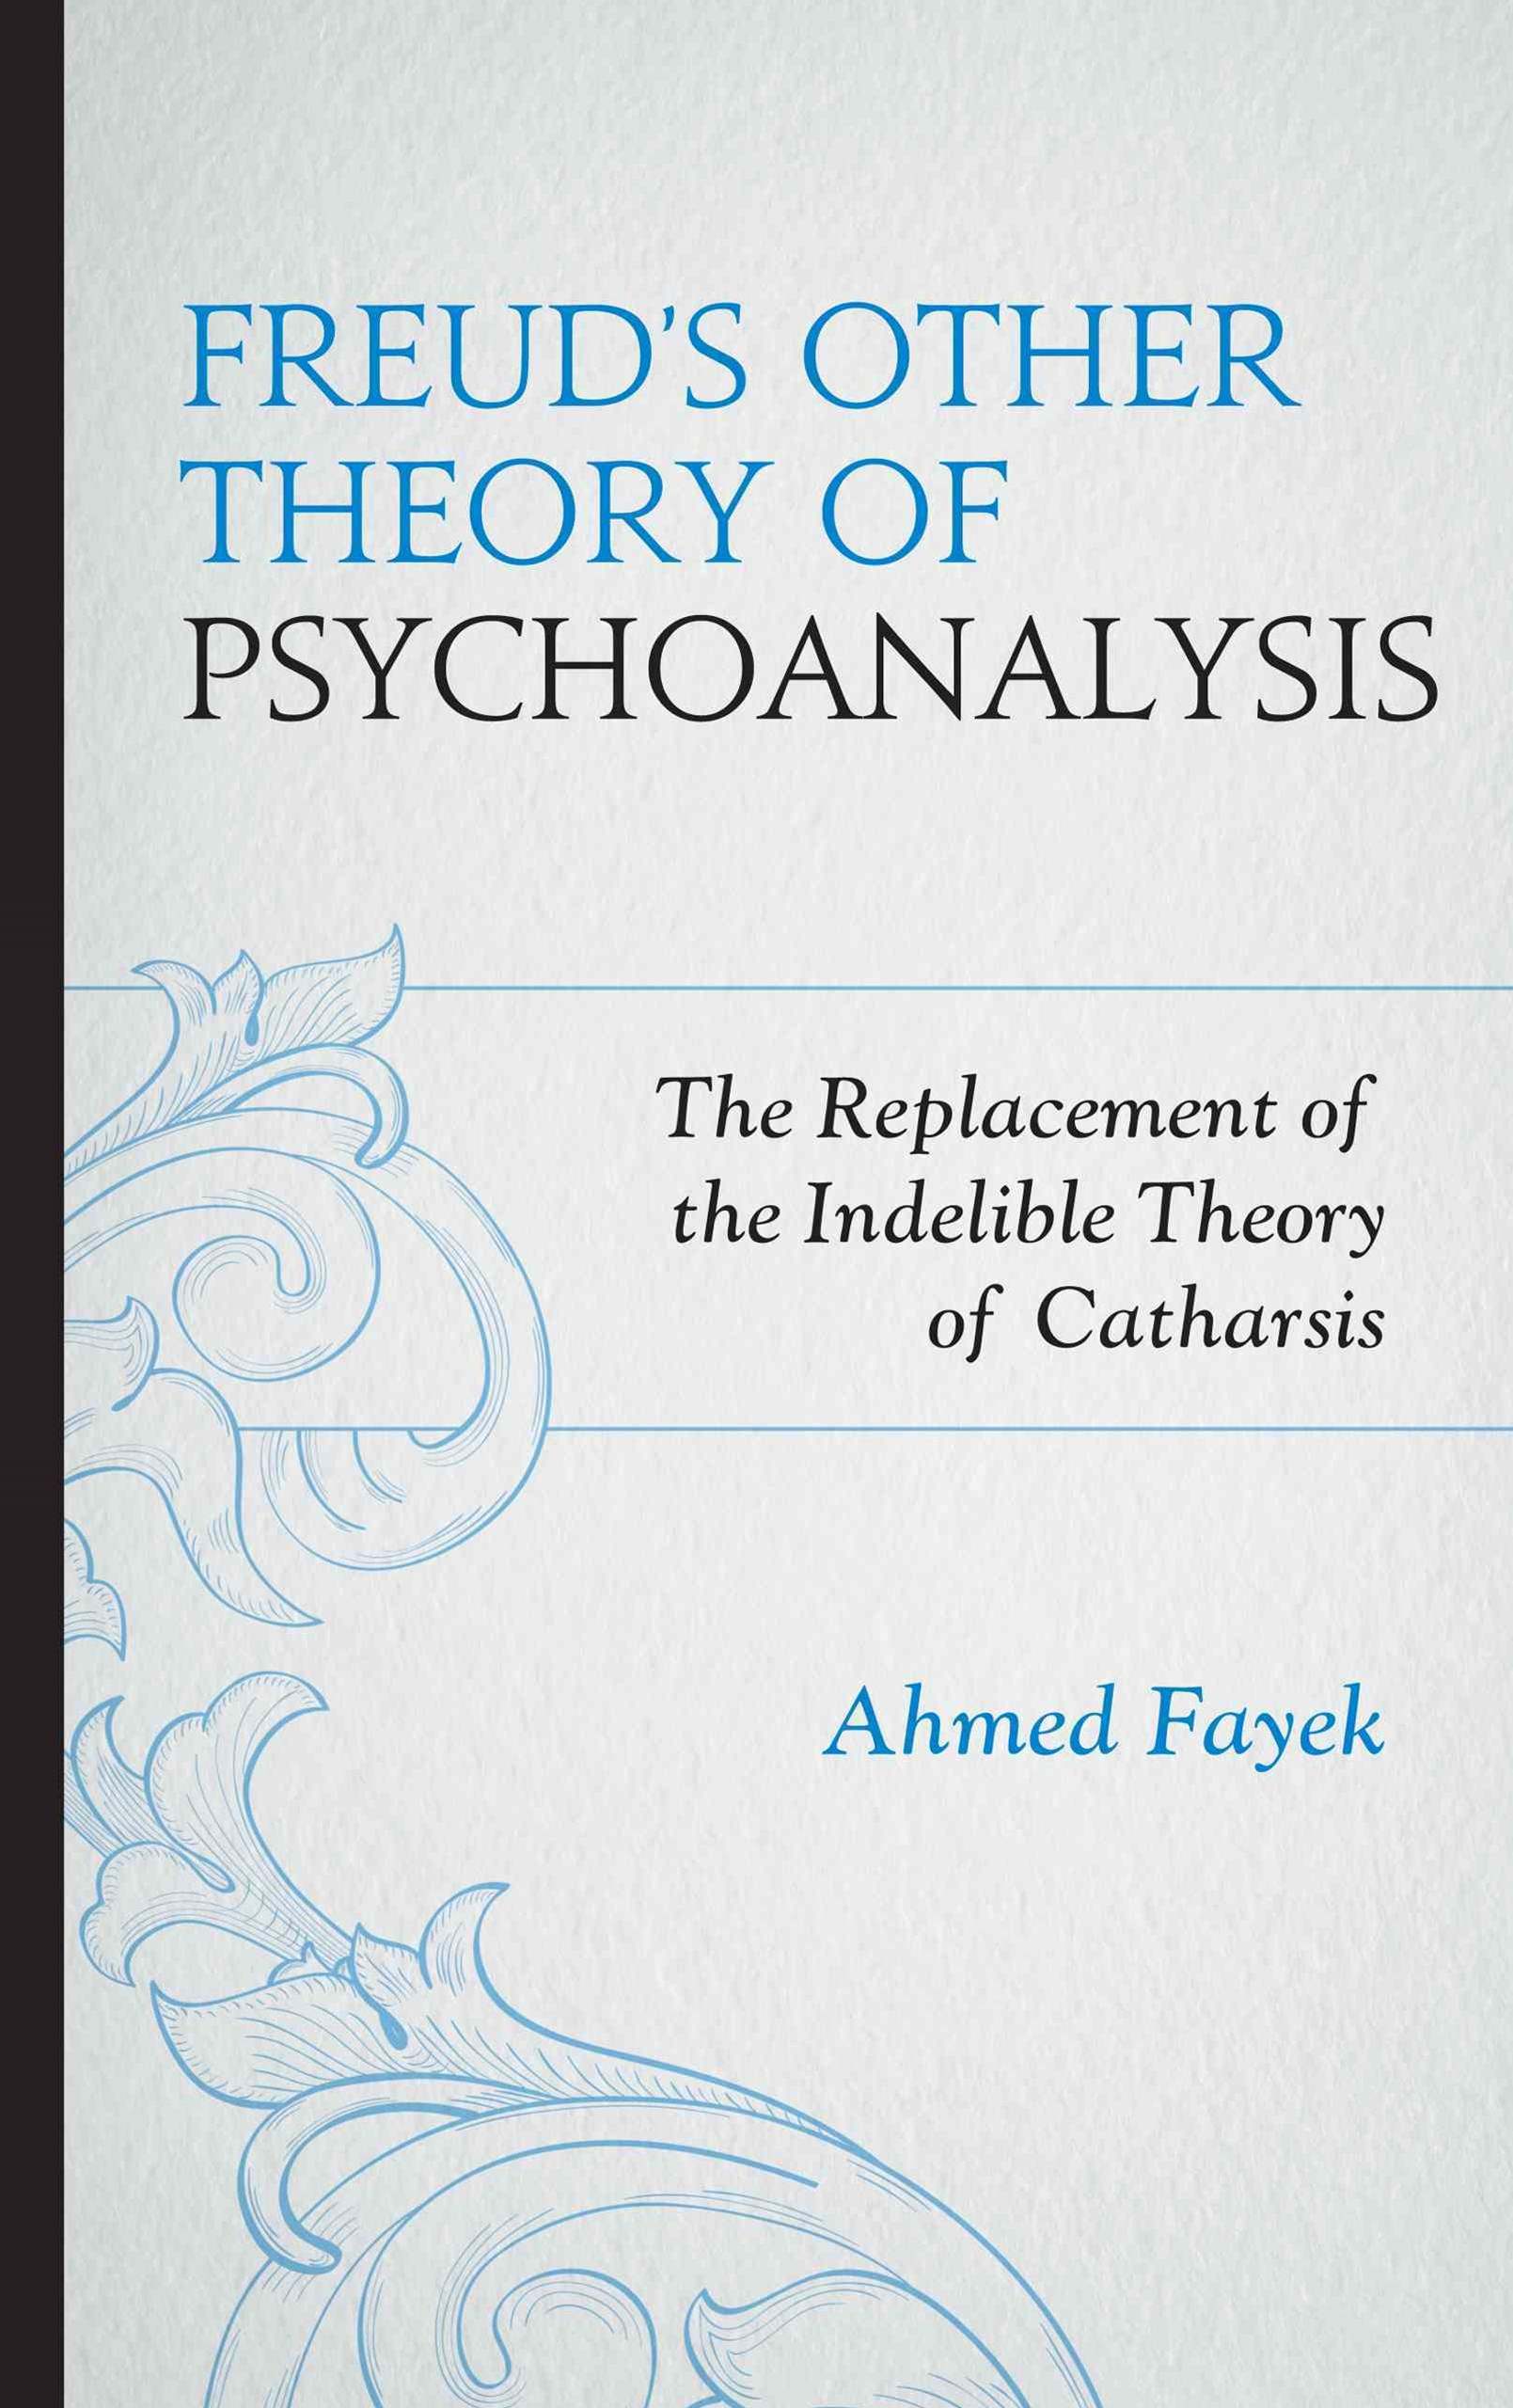 Freud's Other Theory of Psychoanalysis